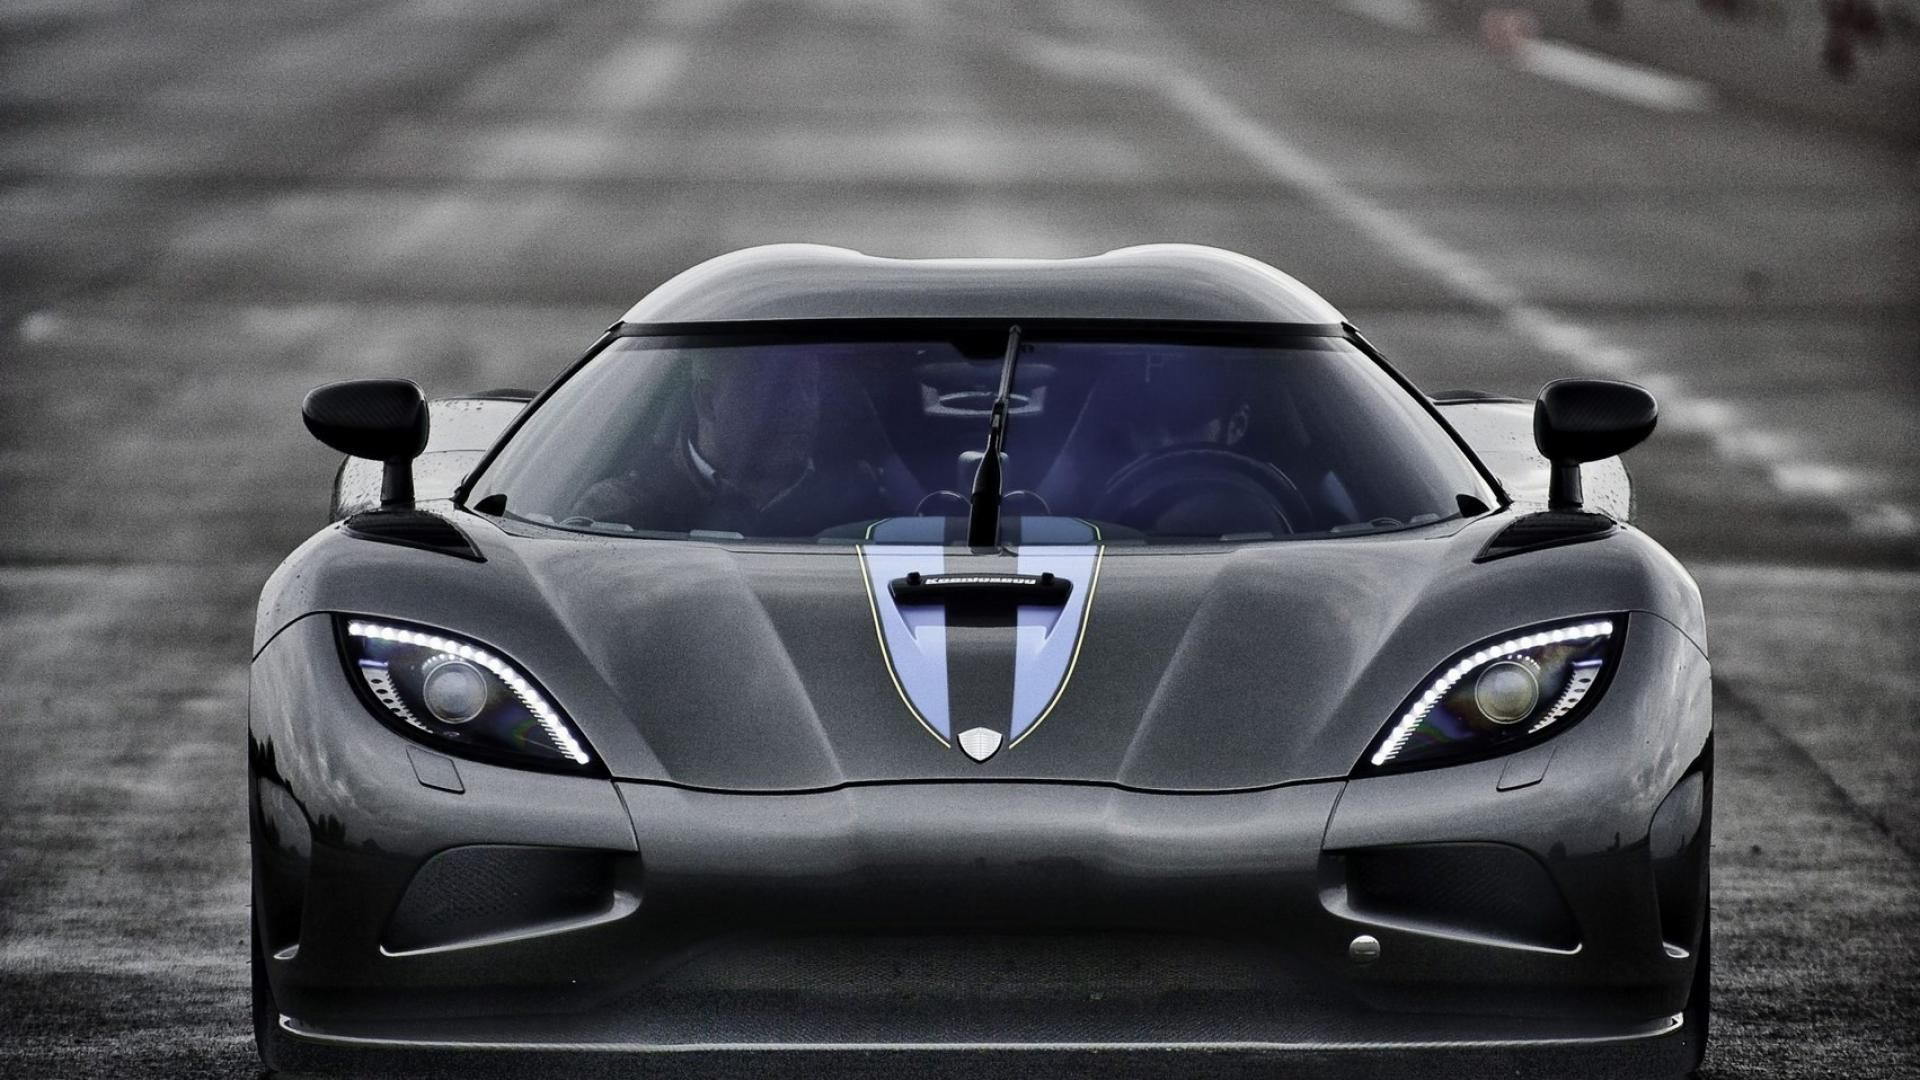 Charmant Koenigsegg Wallpapers Pixel Cars Wallpaper Front Agera Large Car